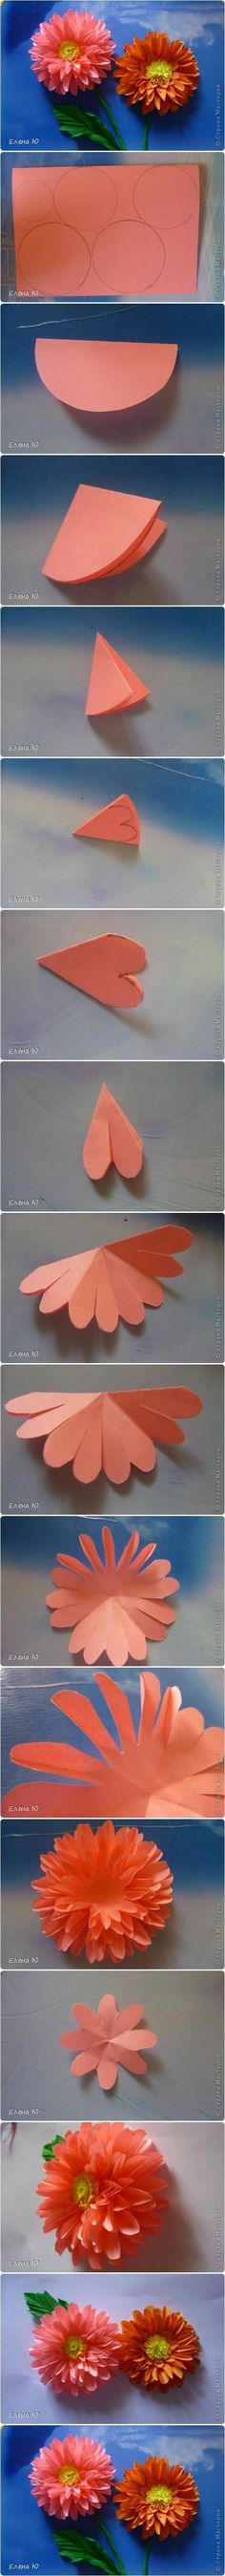 How to Make Paper Dahlias #craft #paper #flower